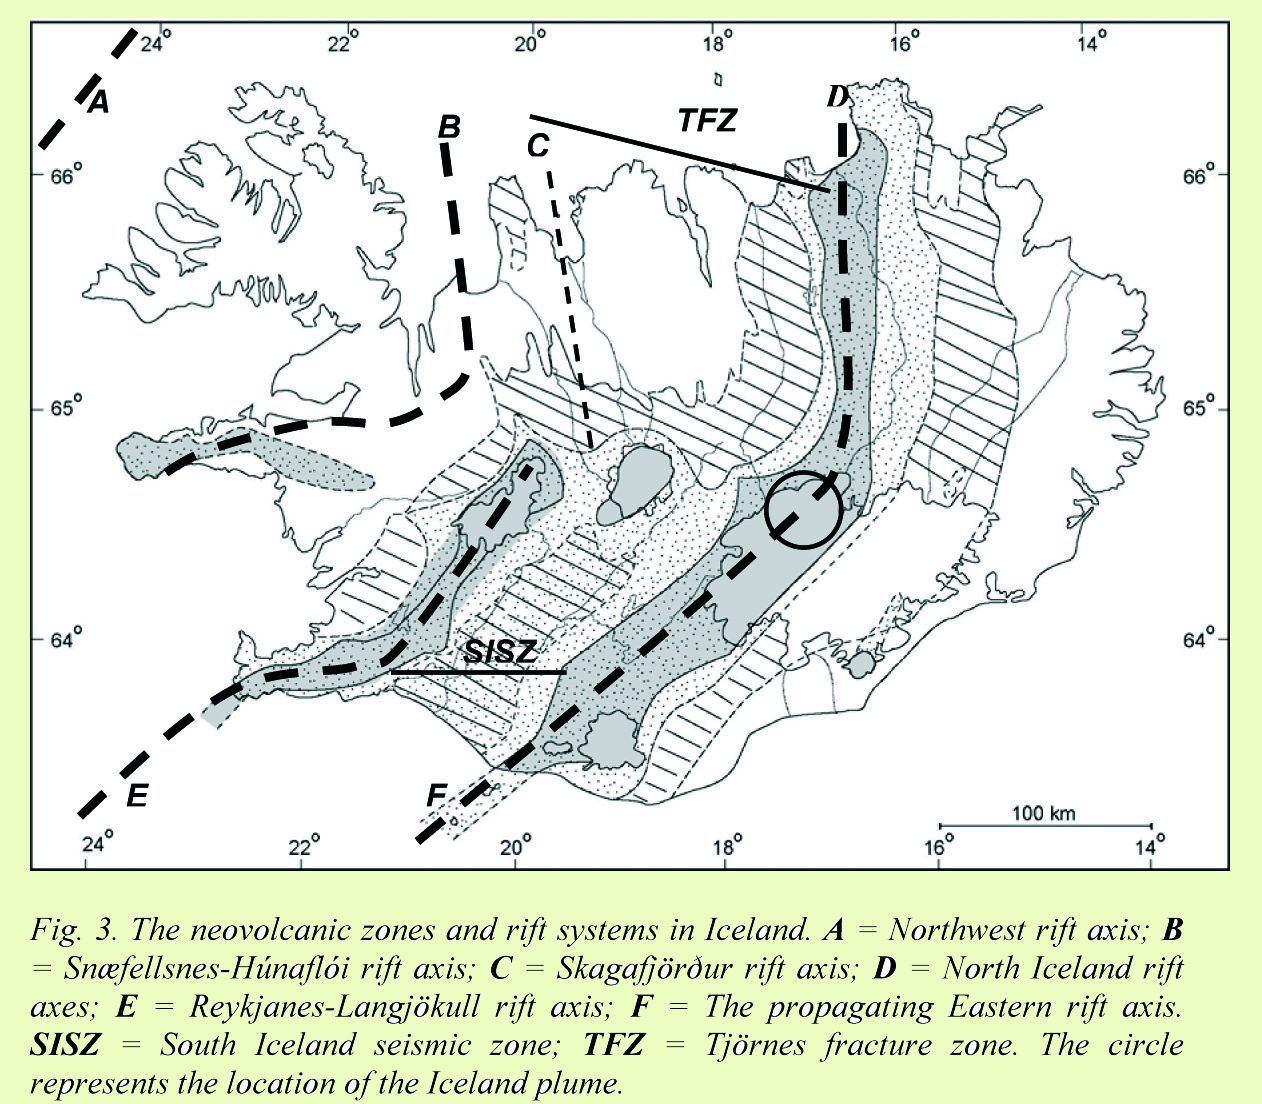 Neo-volcanic zones and rift-B systems: Snaefellsnes-Hunafloi rift axis